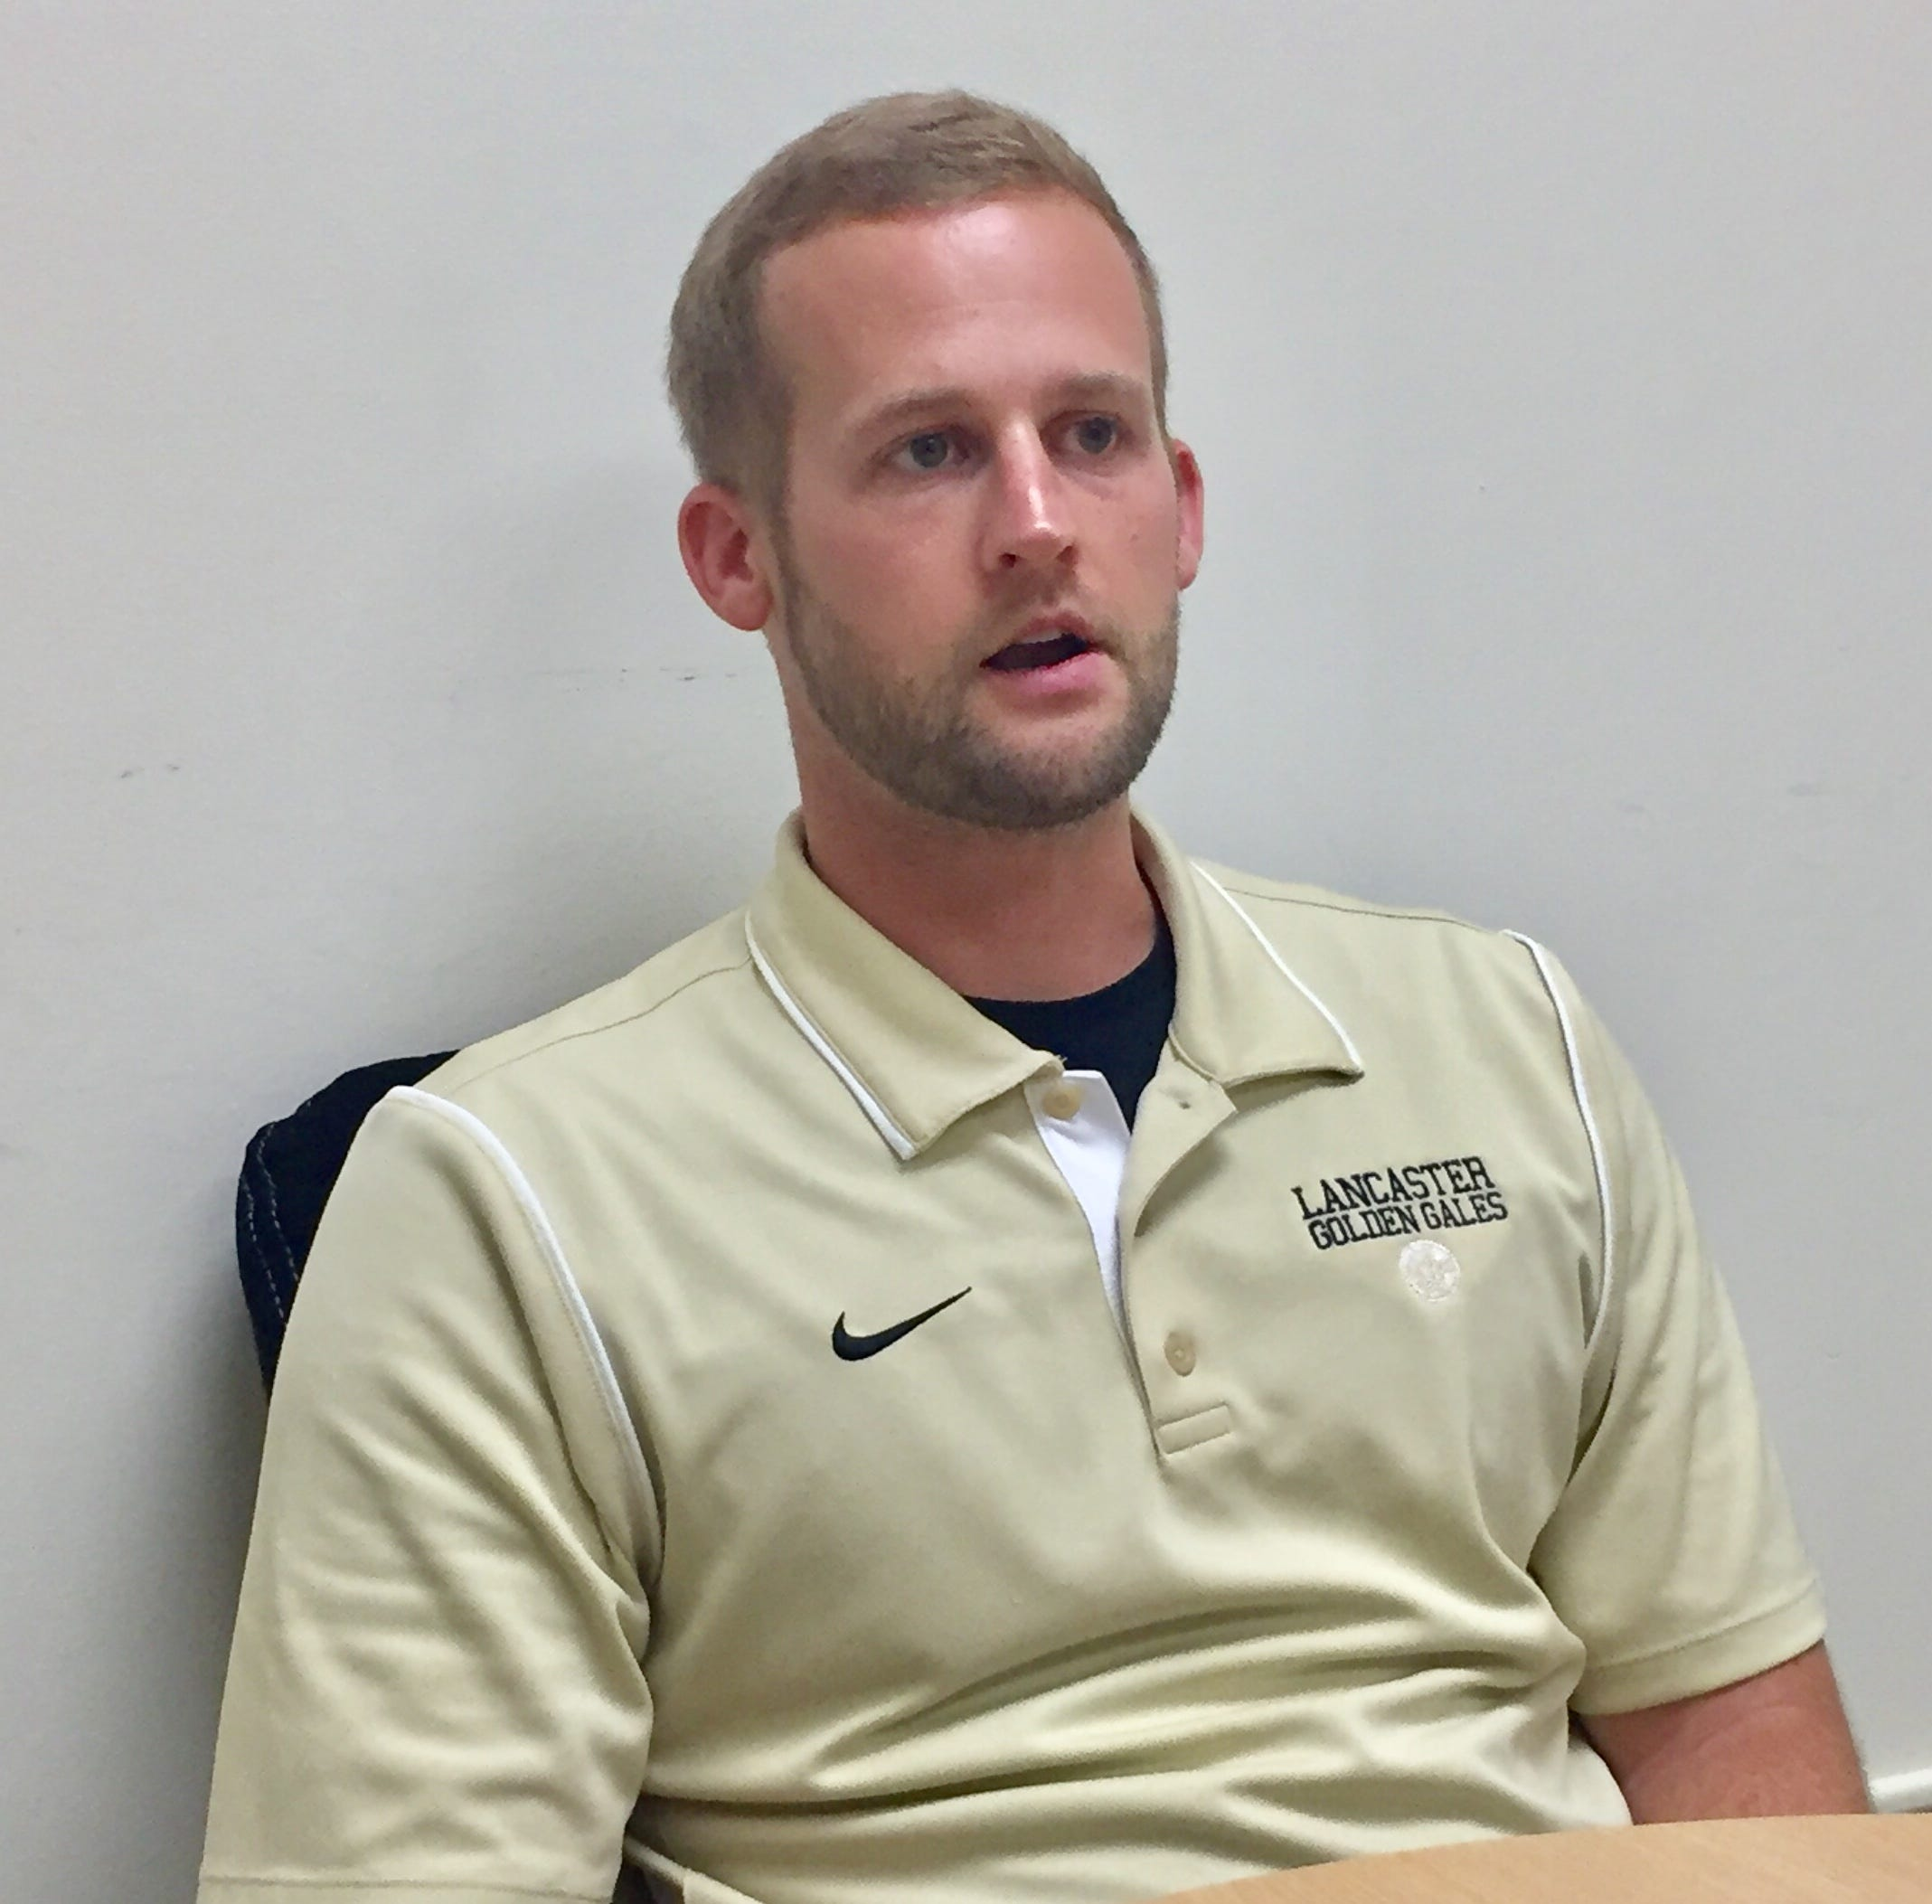 Saturday Conversation: Catching up with Lancaster baseball coach Corey Conn